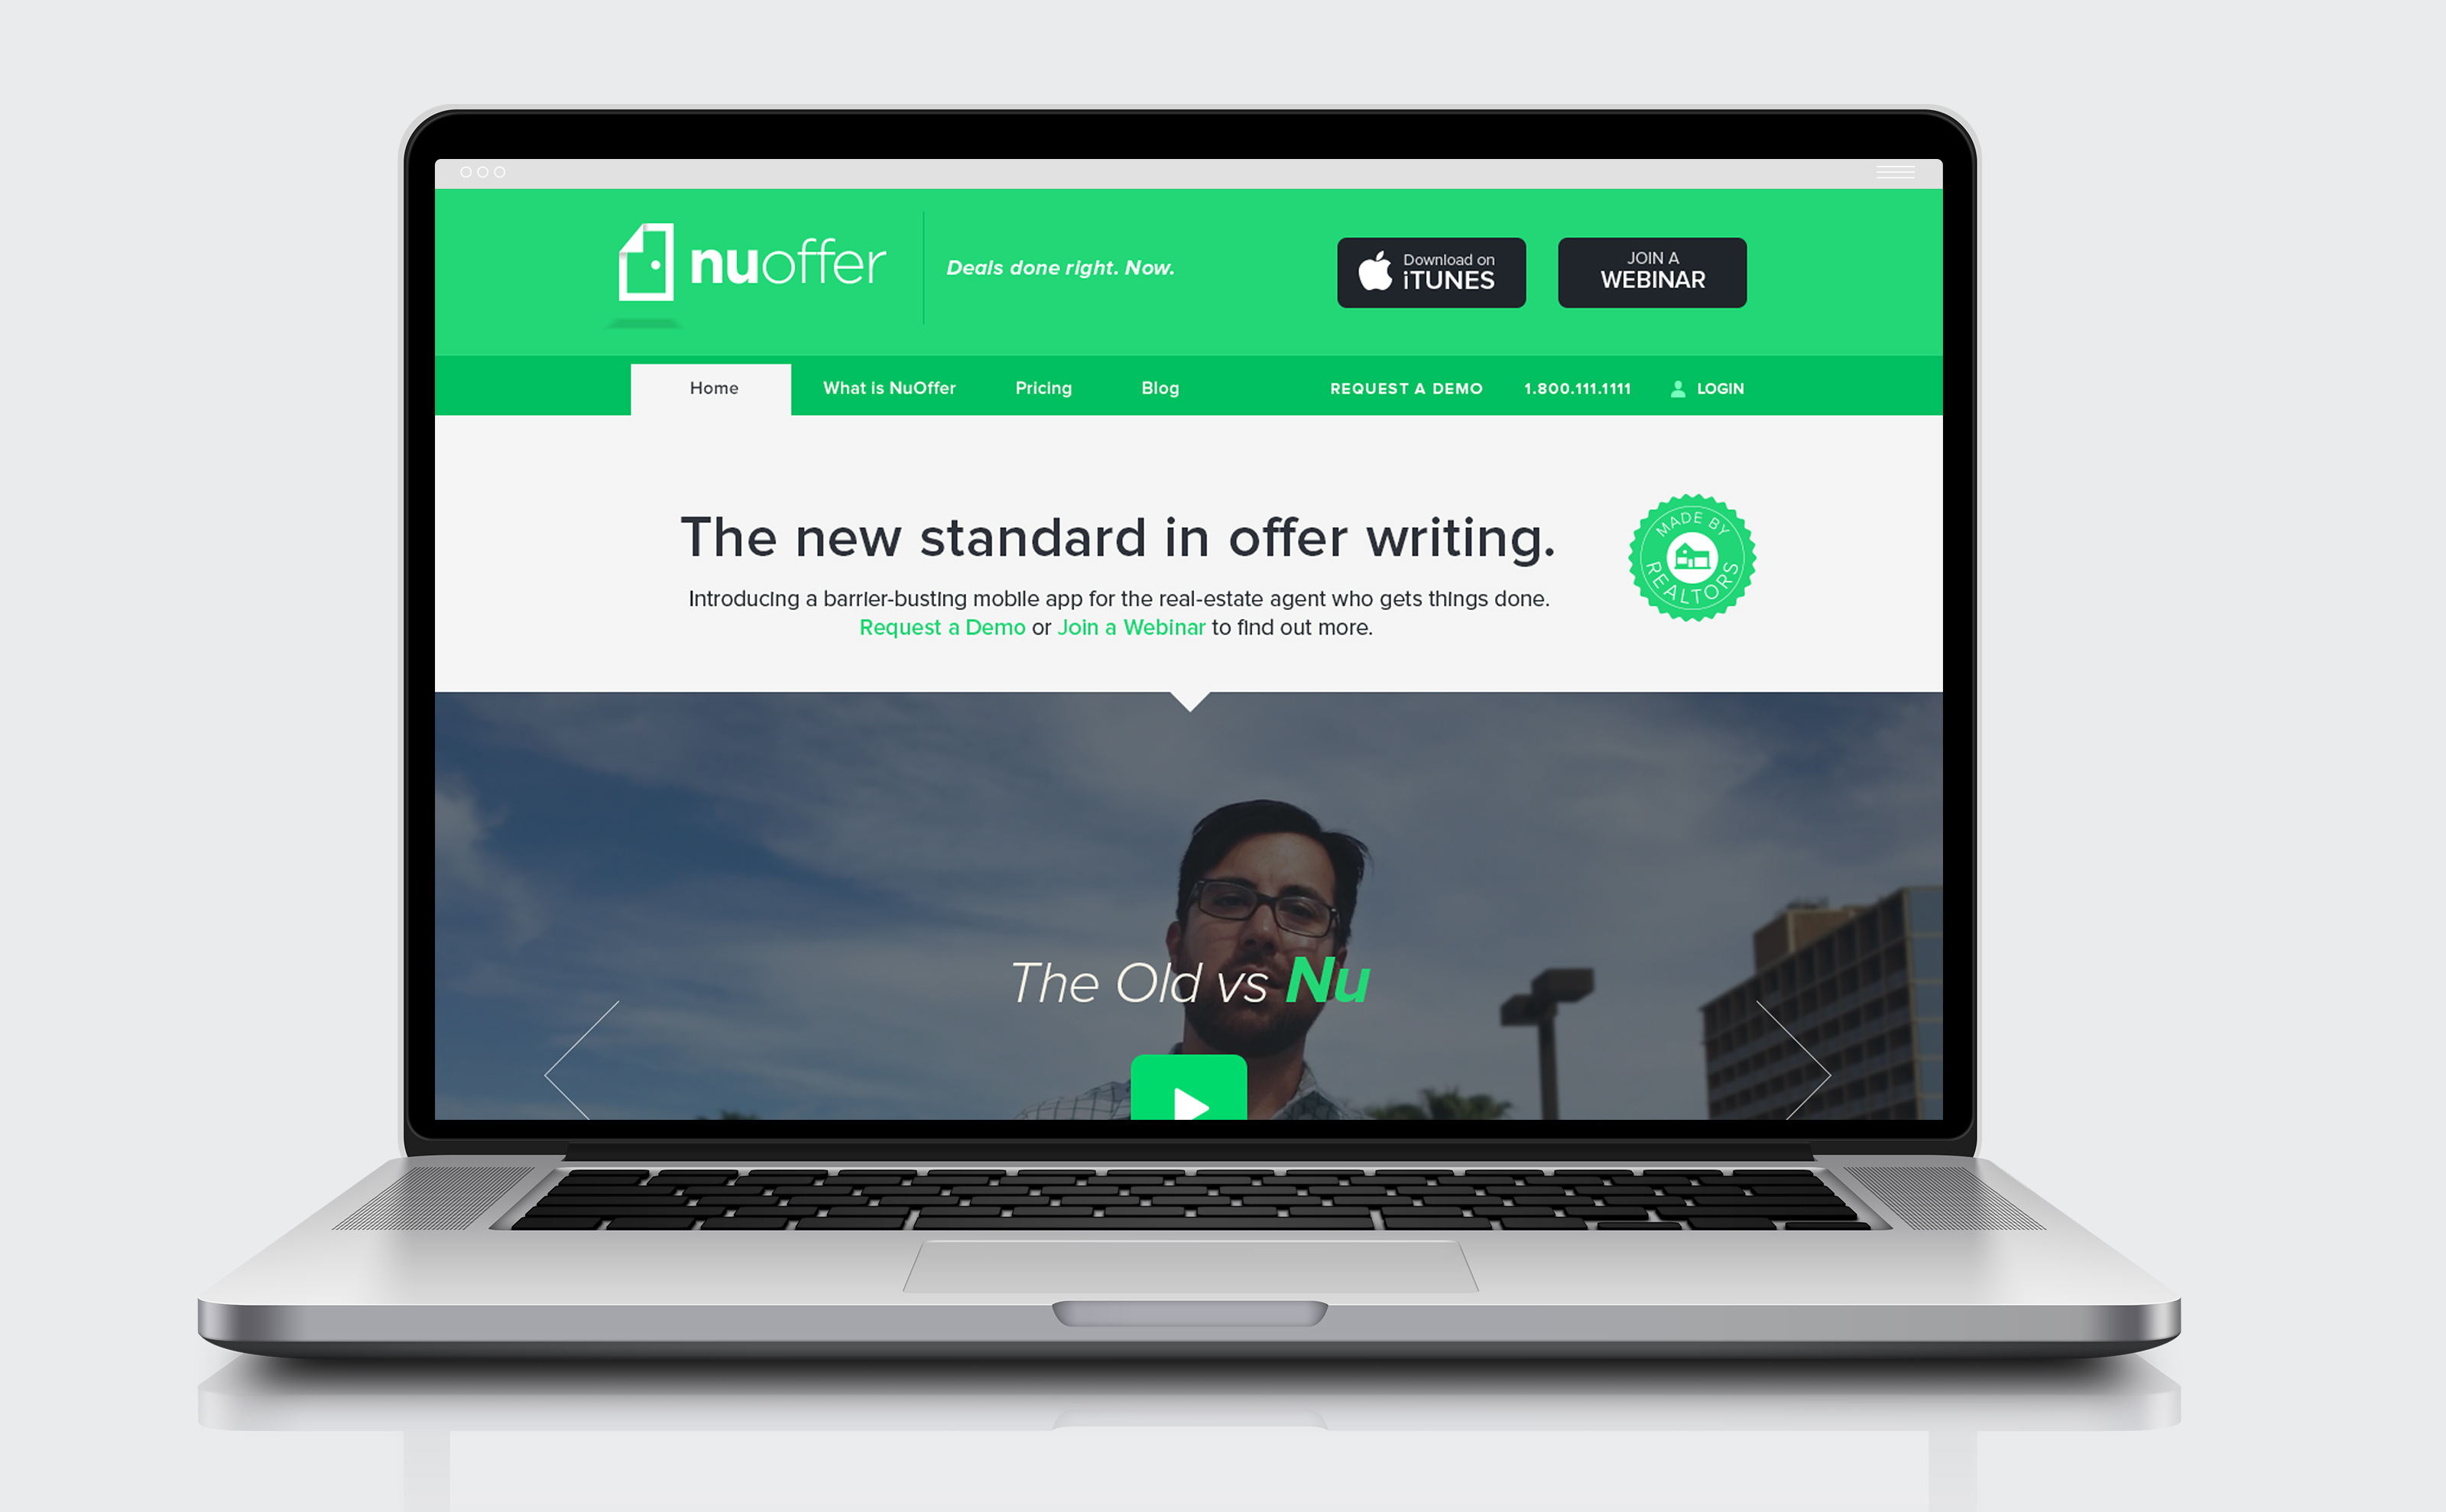 NuOffer brand identity and digital